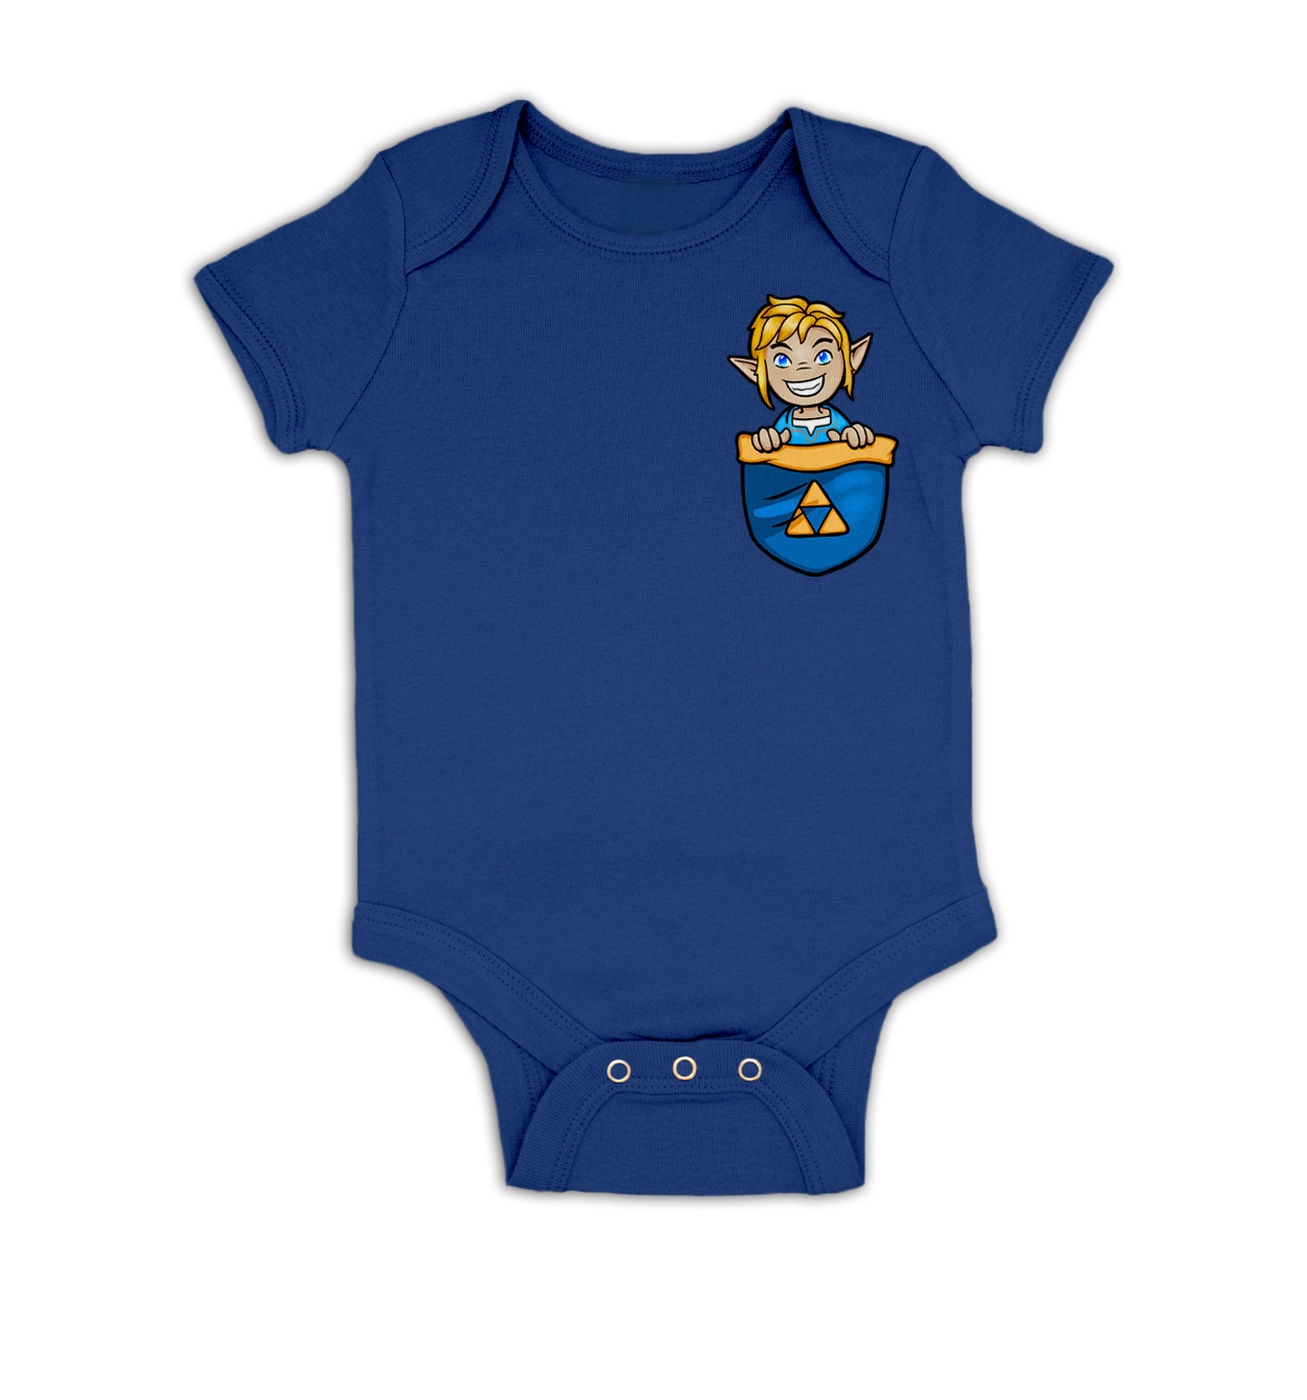 Pocket Hyrule Warrior (Blue) baby grow by Something Geeky